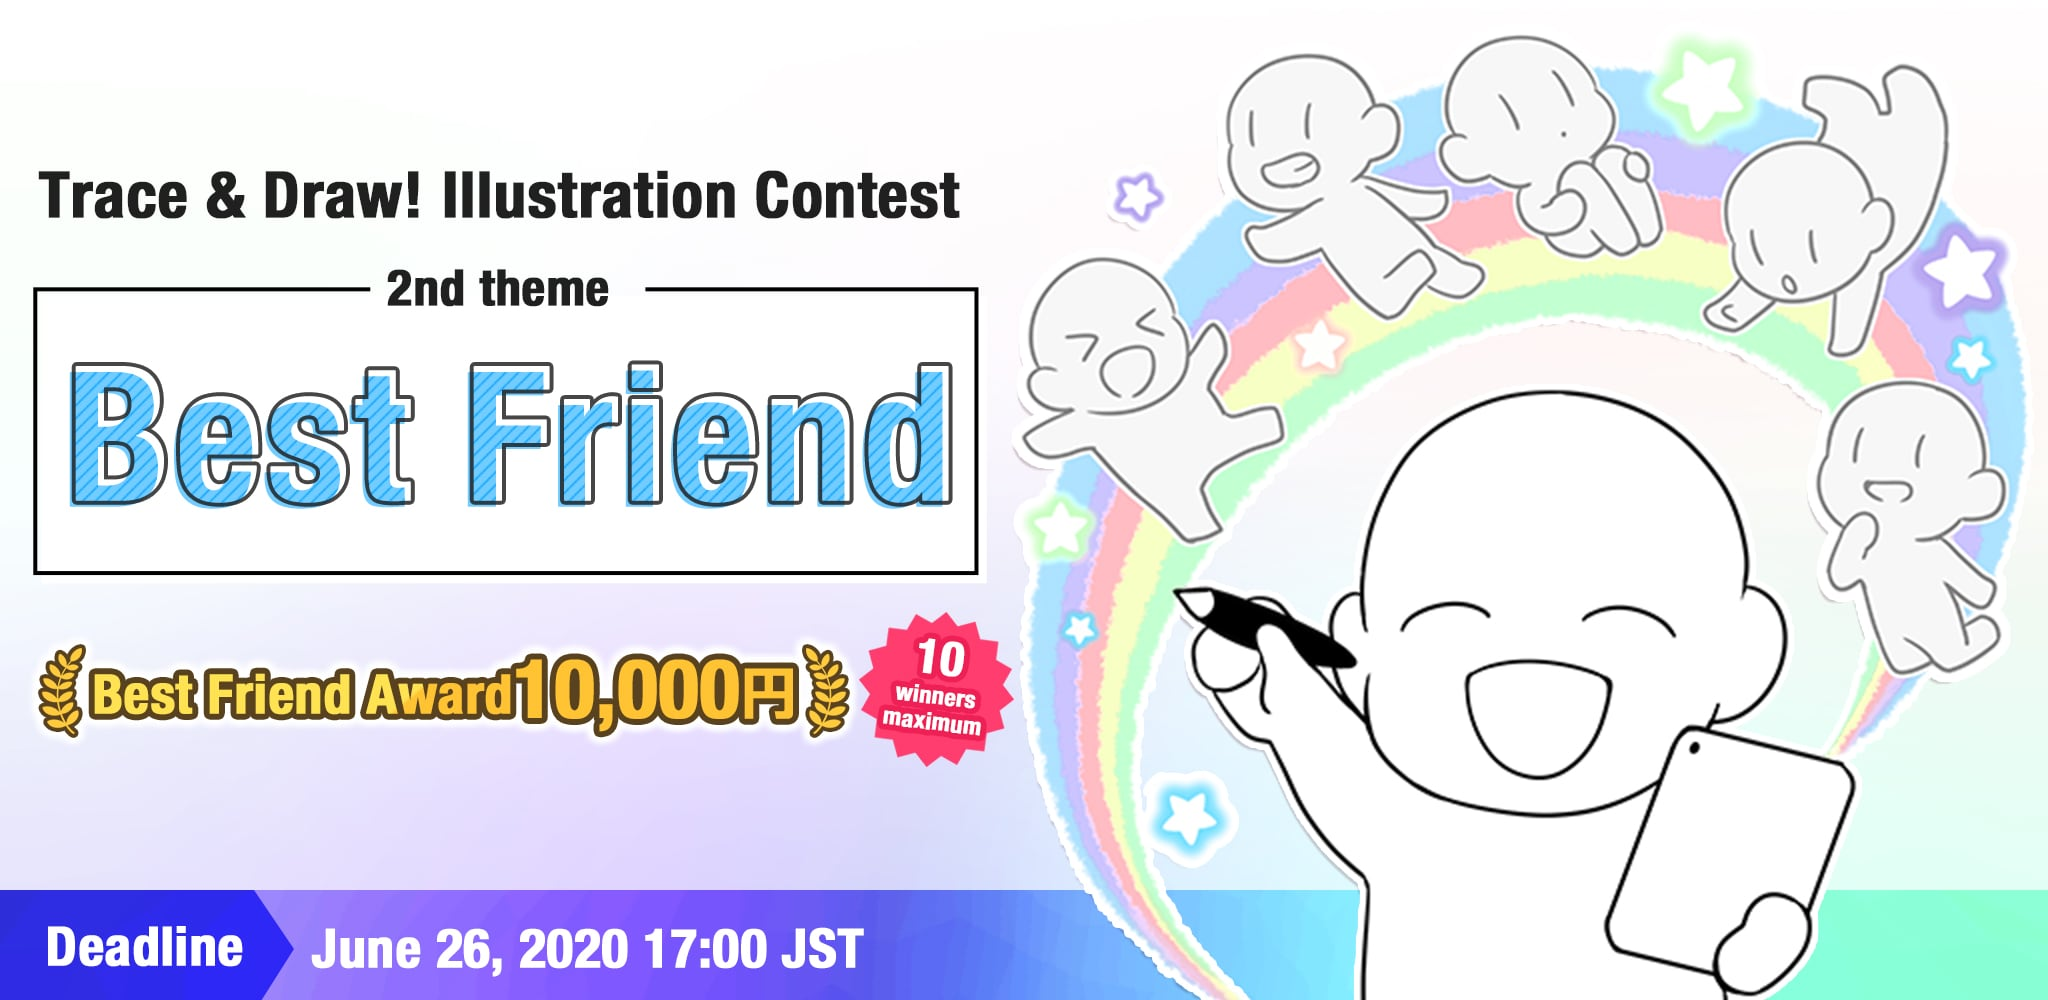 2nd Trace & Draw! Illustration Contest - ART street by MediBang